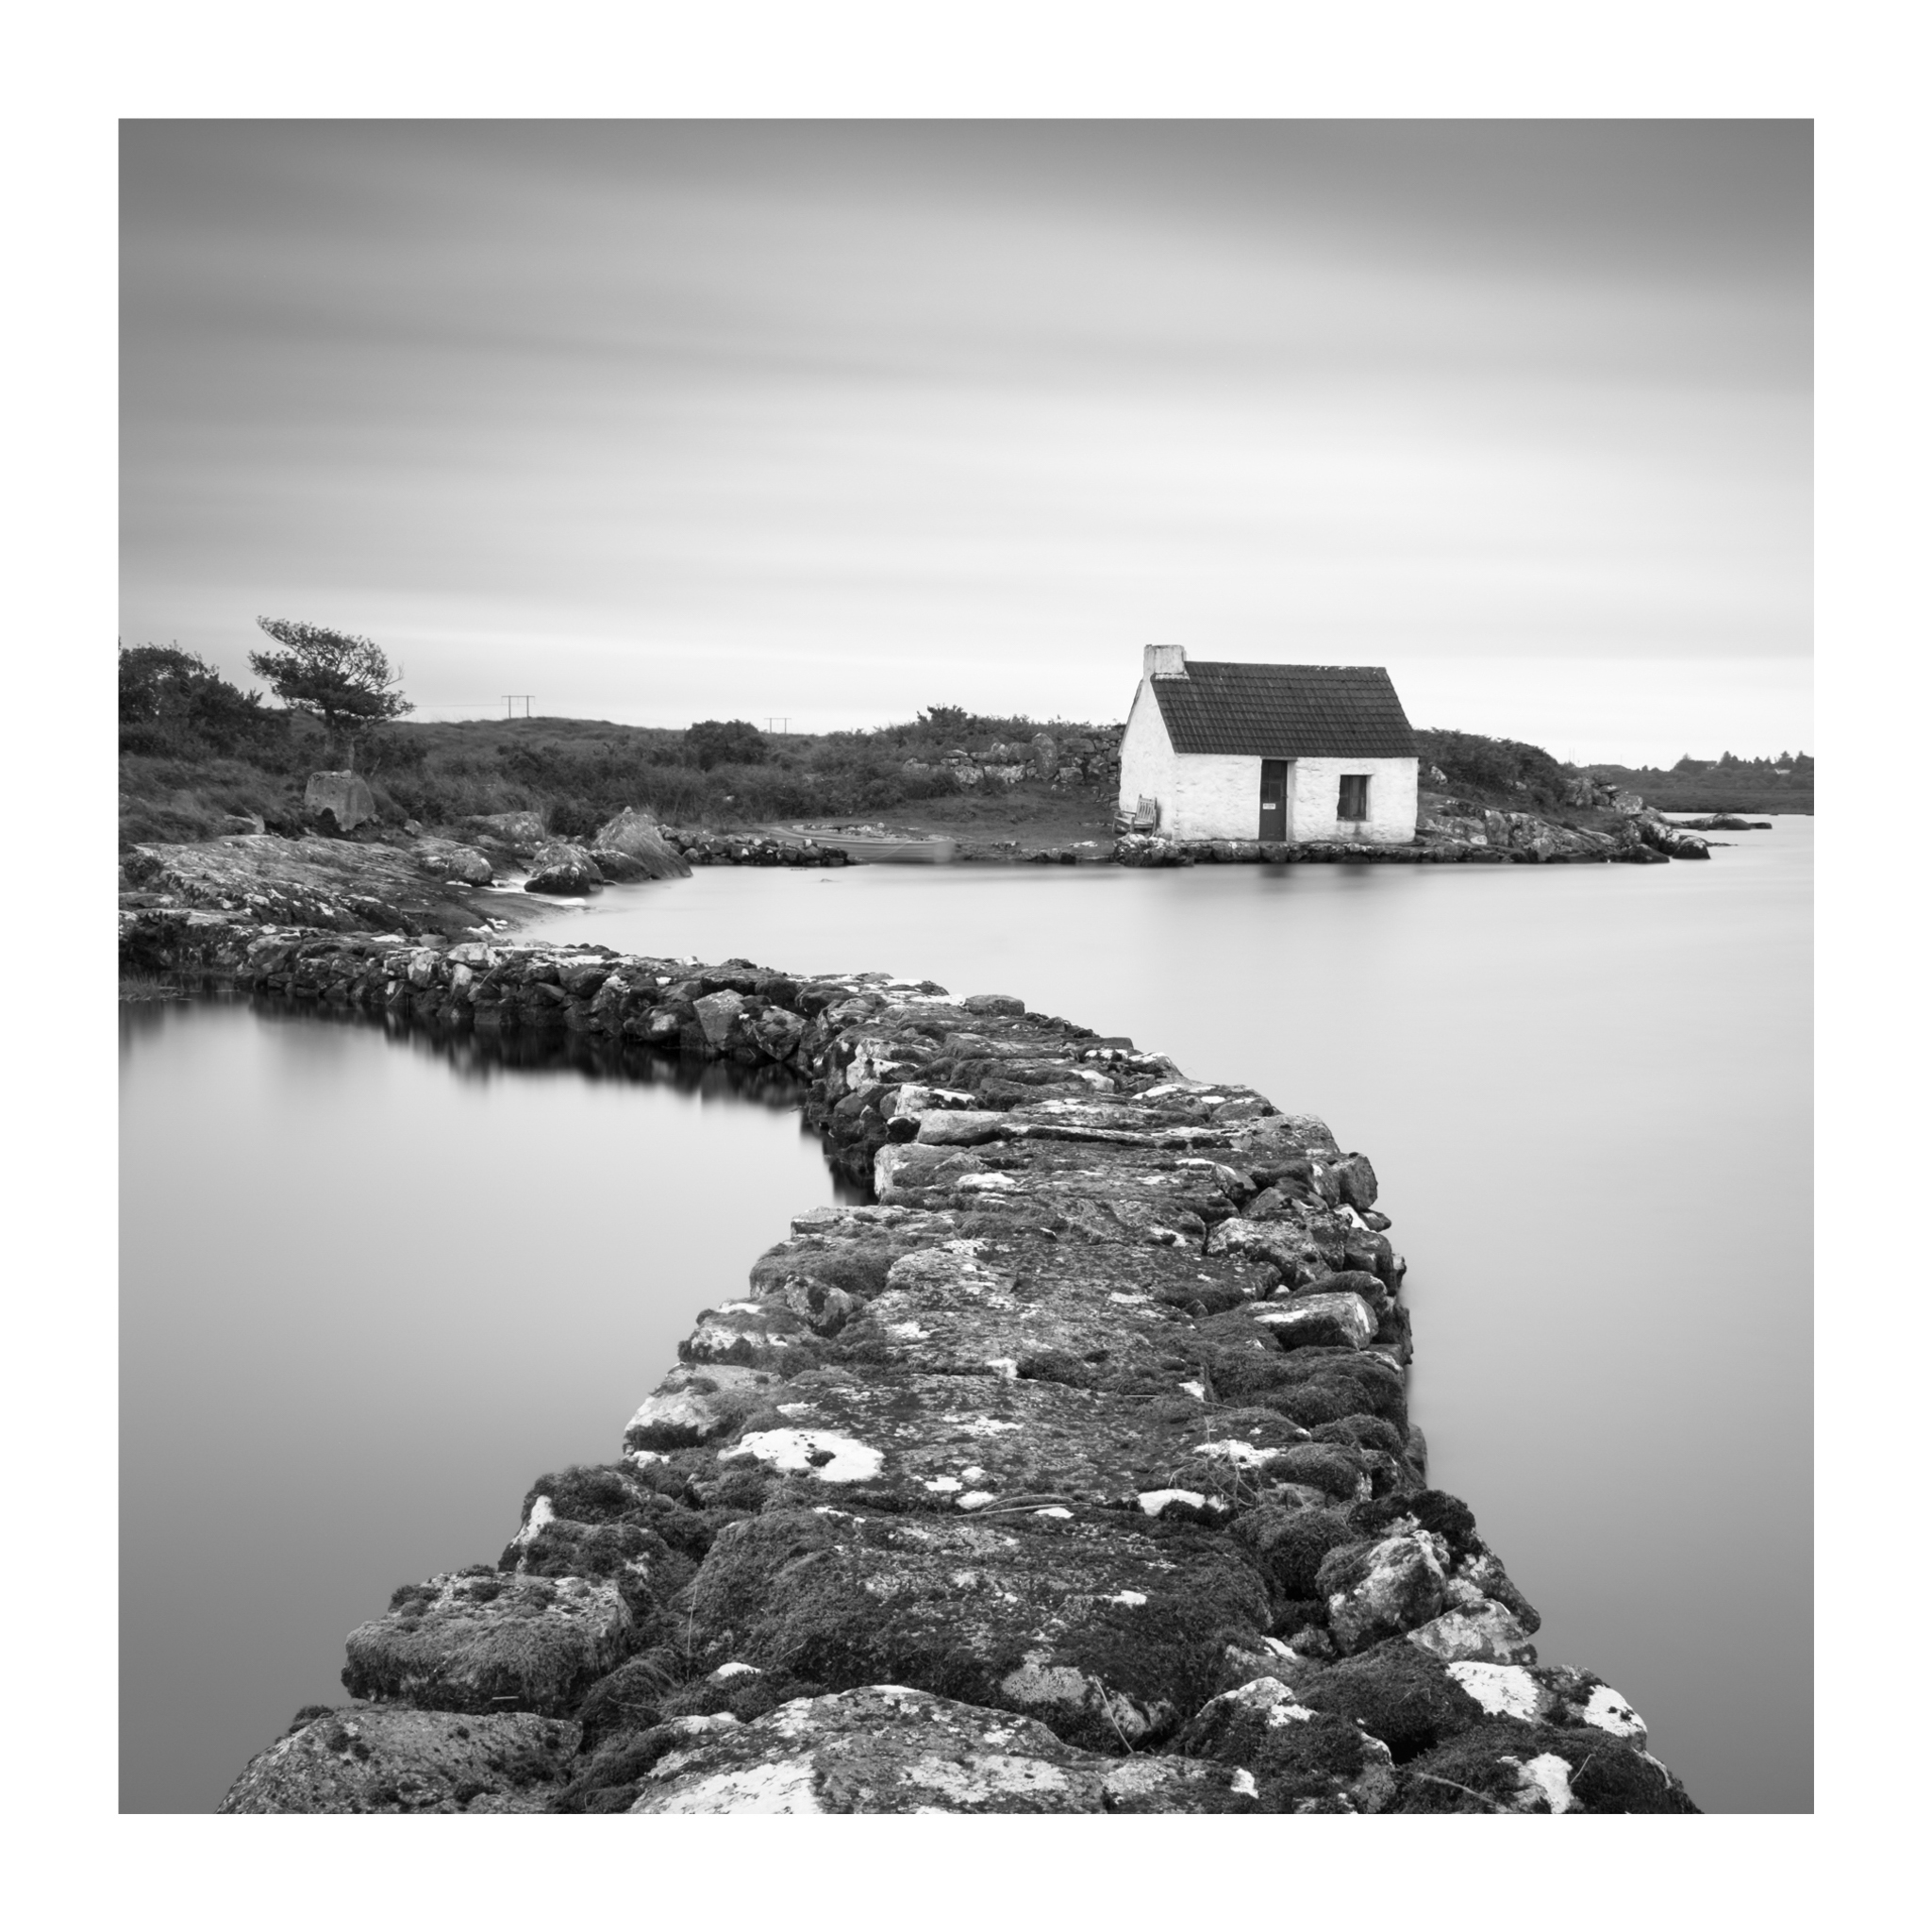 Screebe Fishing hut, Connemara